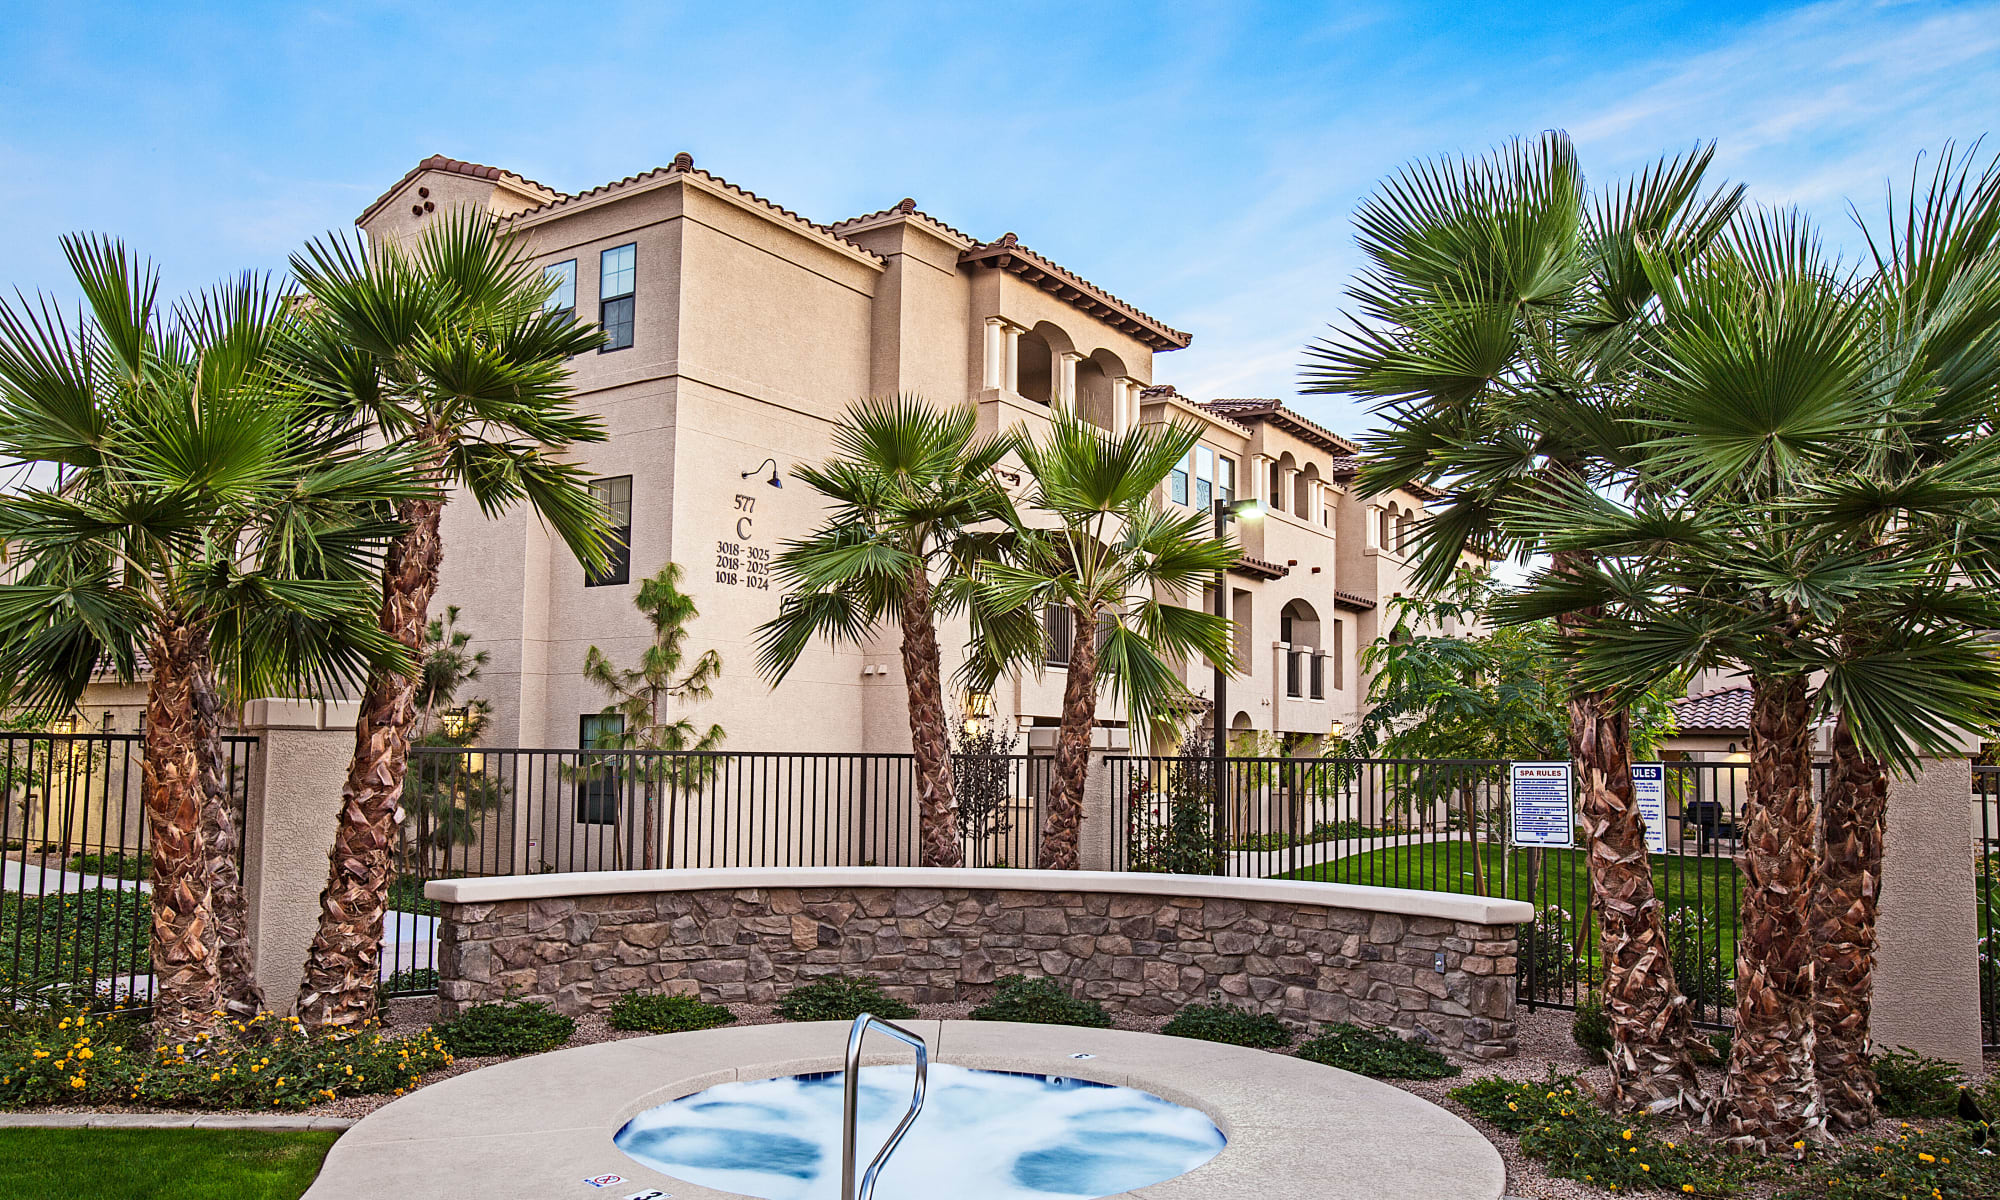 Resident services at San Marquis, beautifully landscaped with Palm Trees in Tempe, Arizona